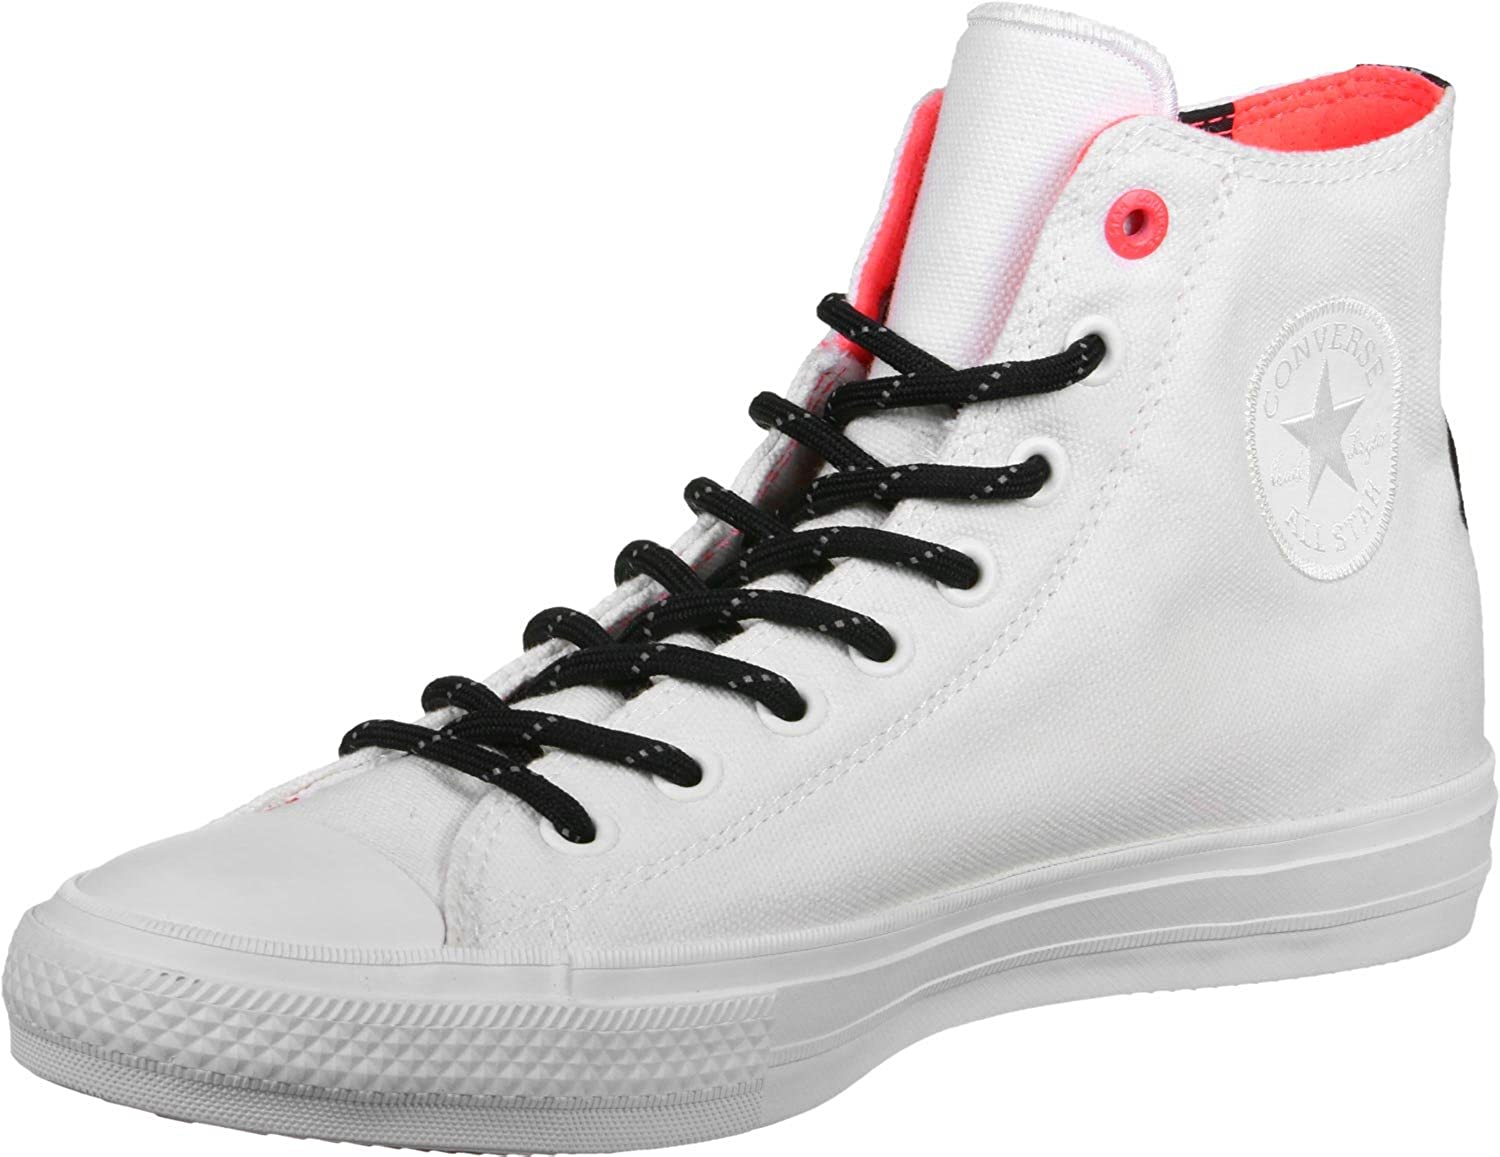 e3f270b71b42 Amazon.com  Converse Chuck Taylor All Star II Shield Canvas Hi  White Lava Gum Lace up casual Shoes  Shoes